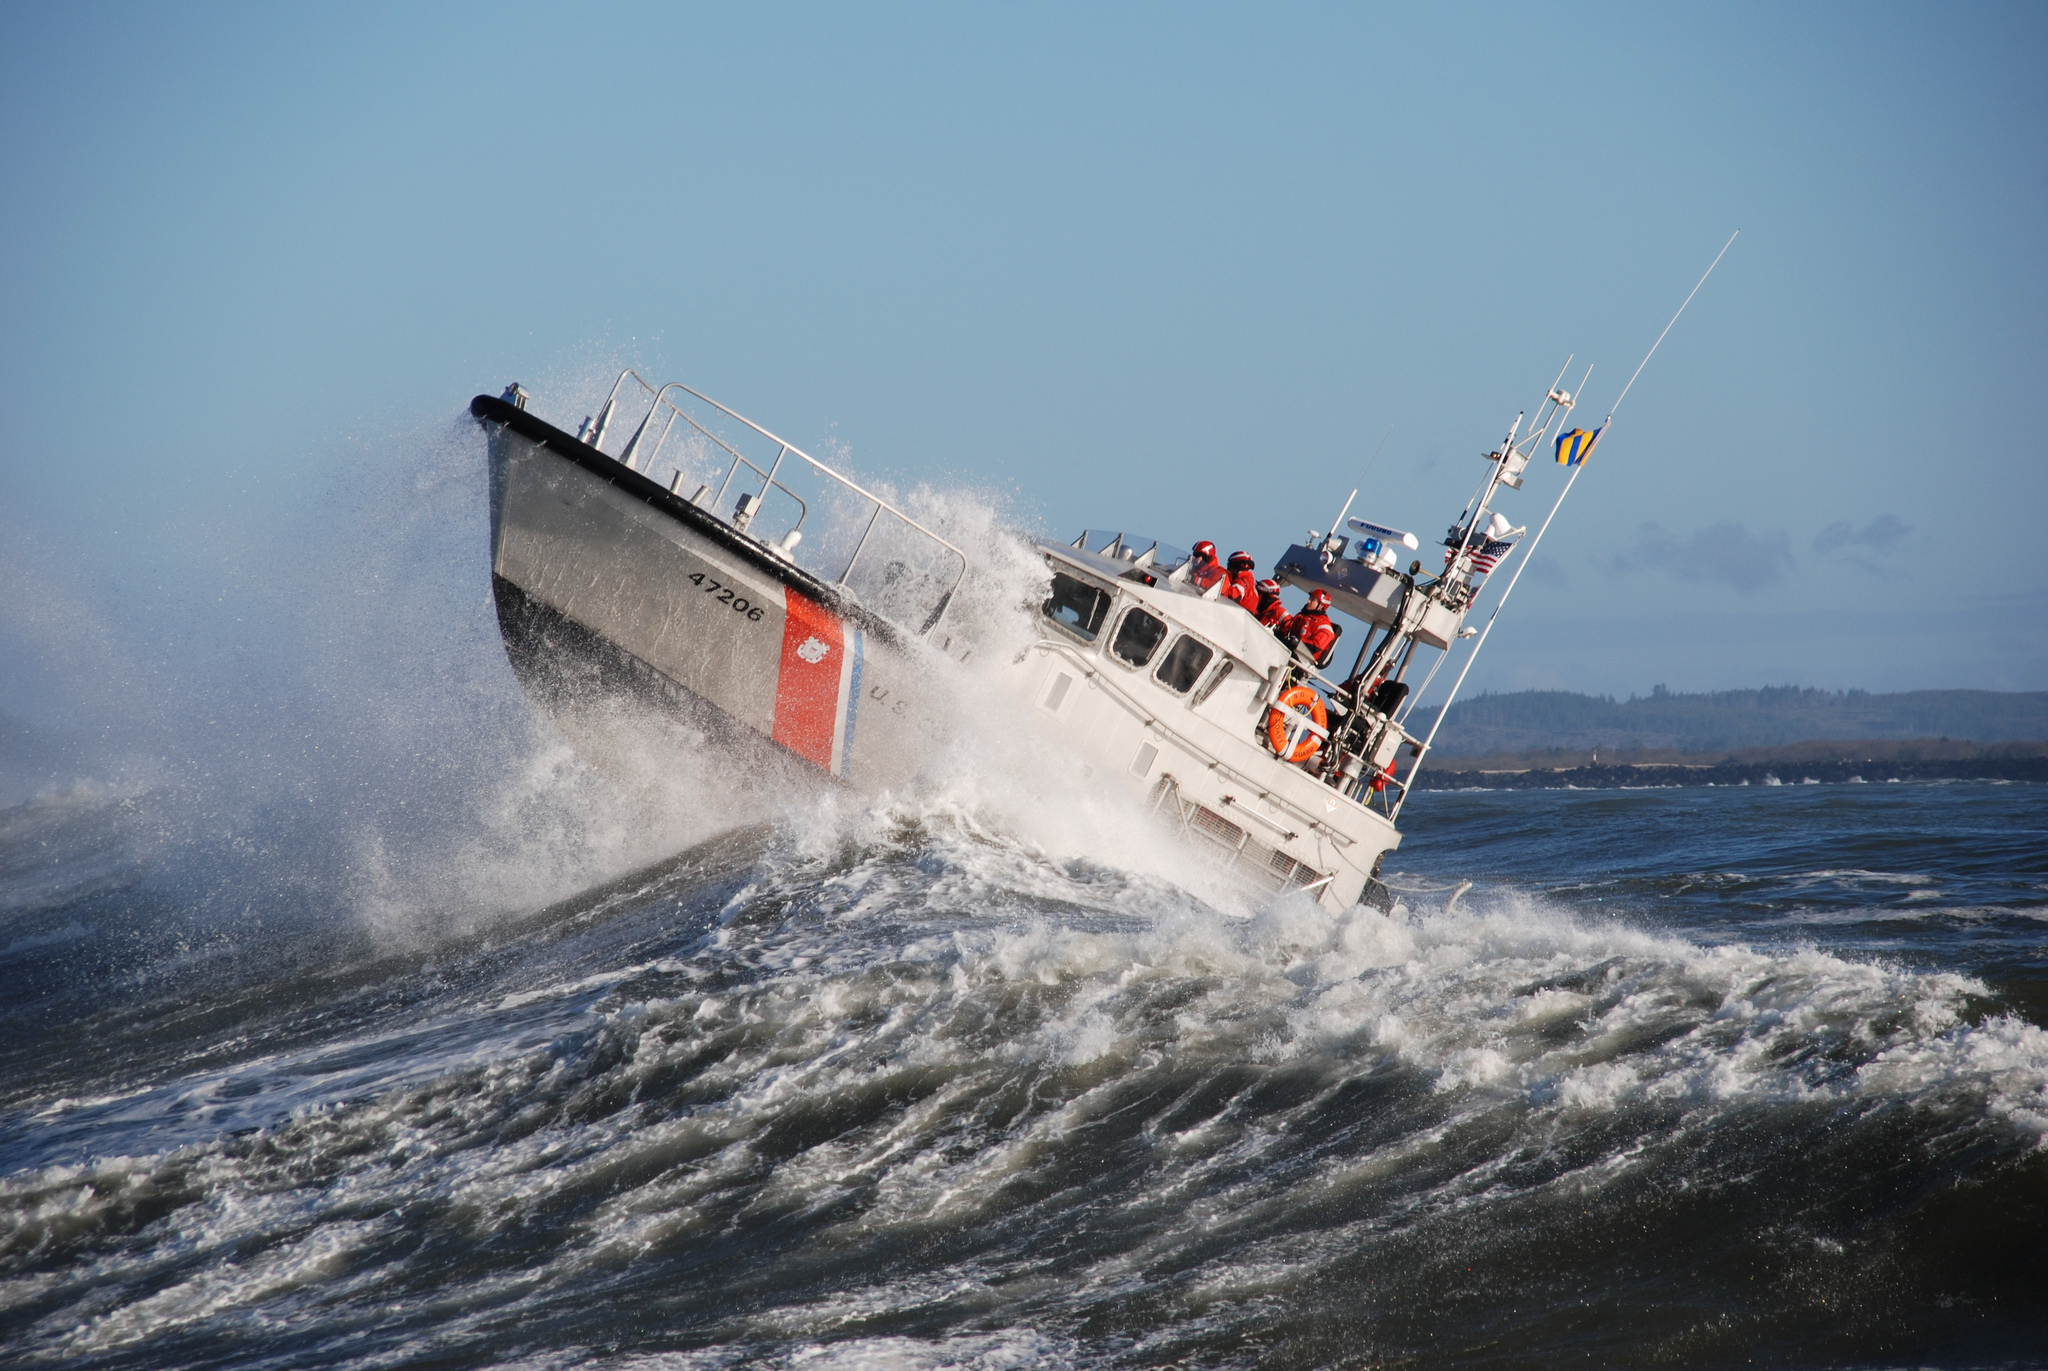 The United States Coast Guard: Expect the Unexpected